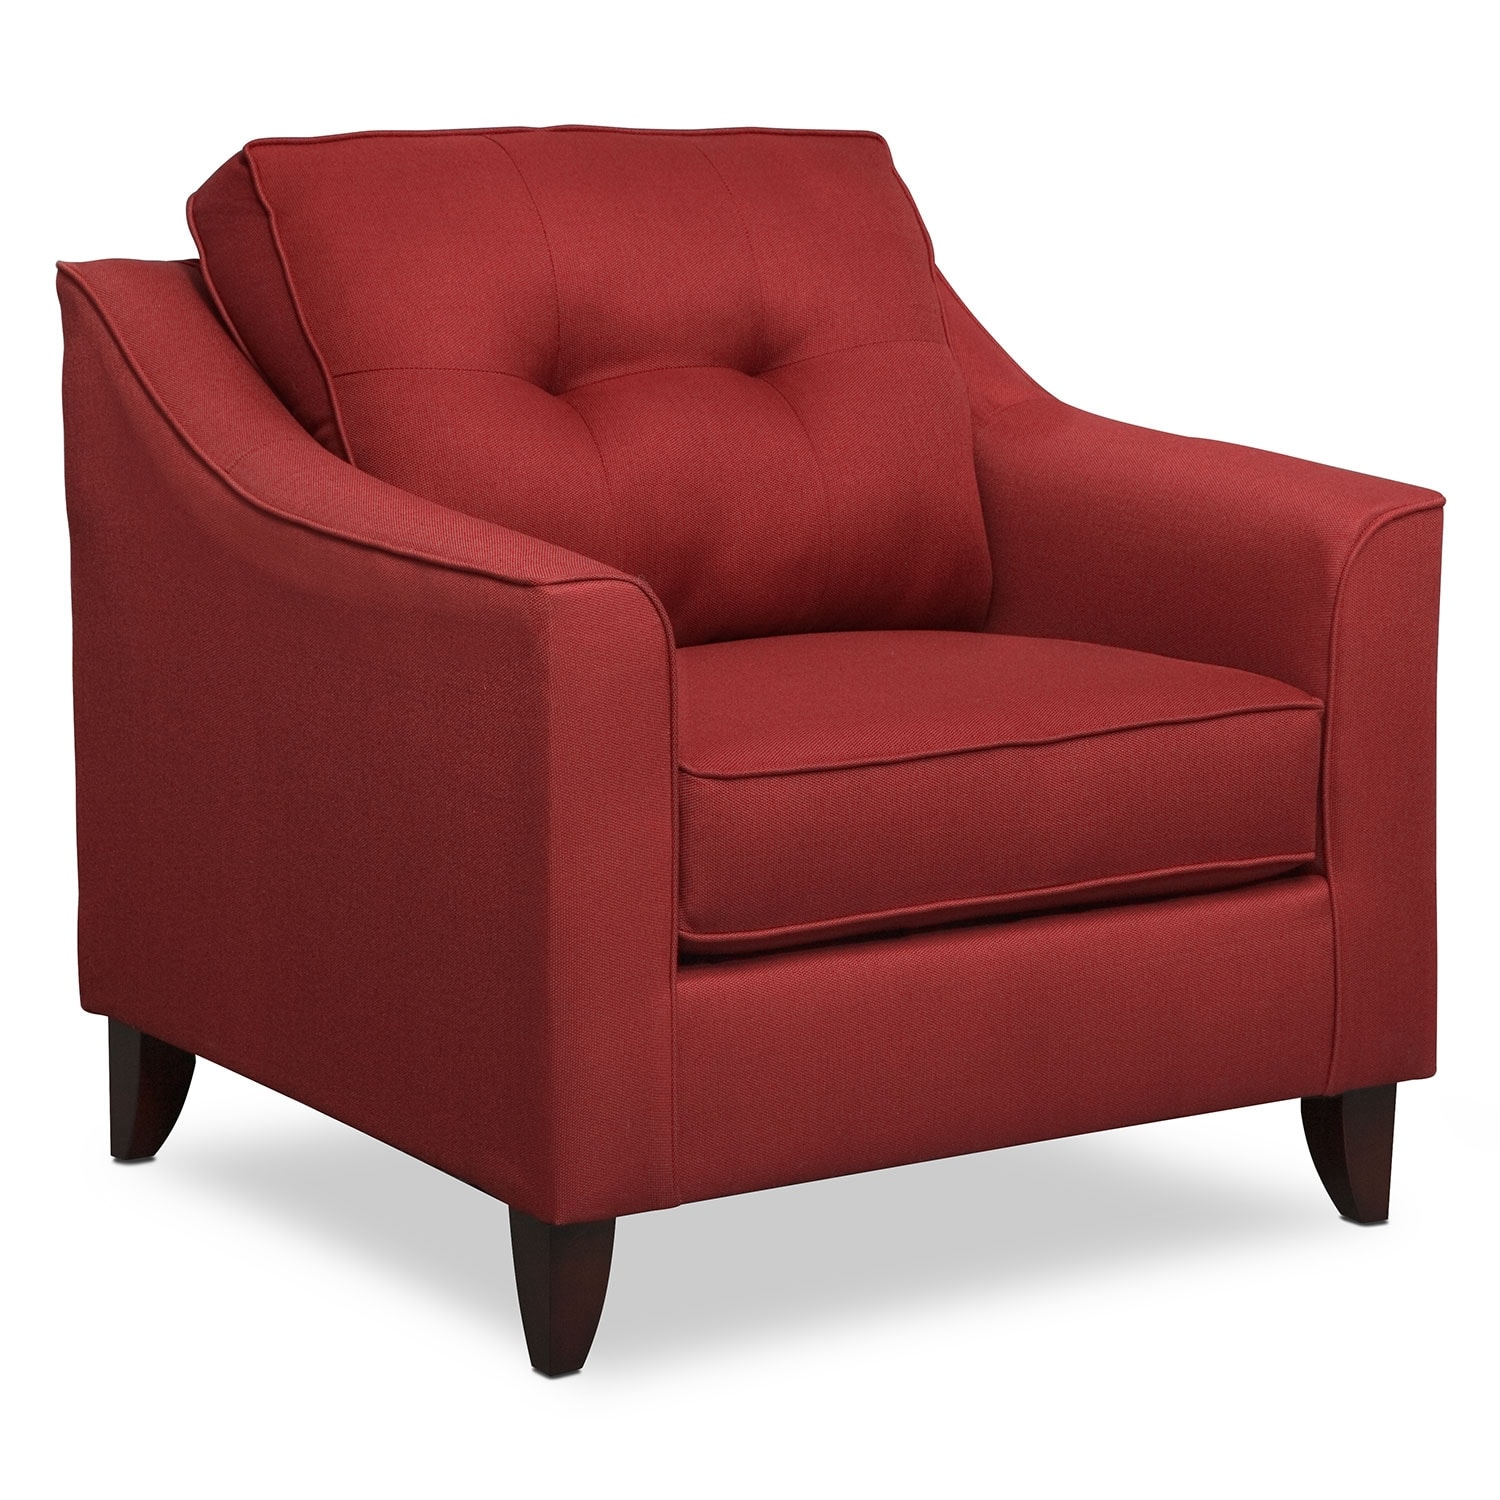 Living Room Furniture - Marco Red Chair